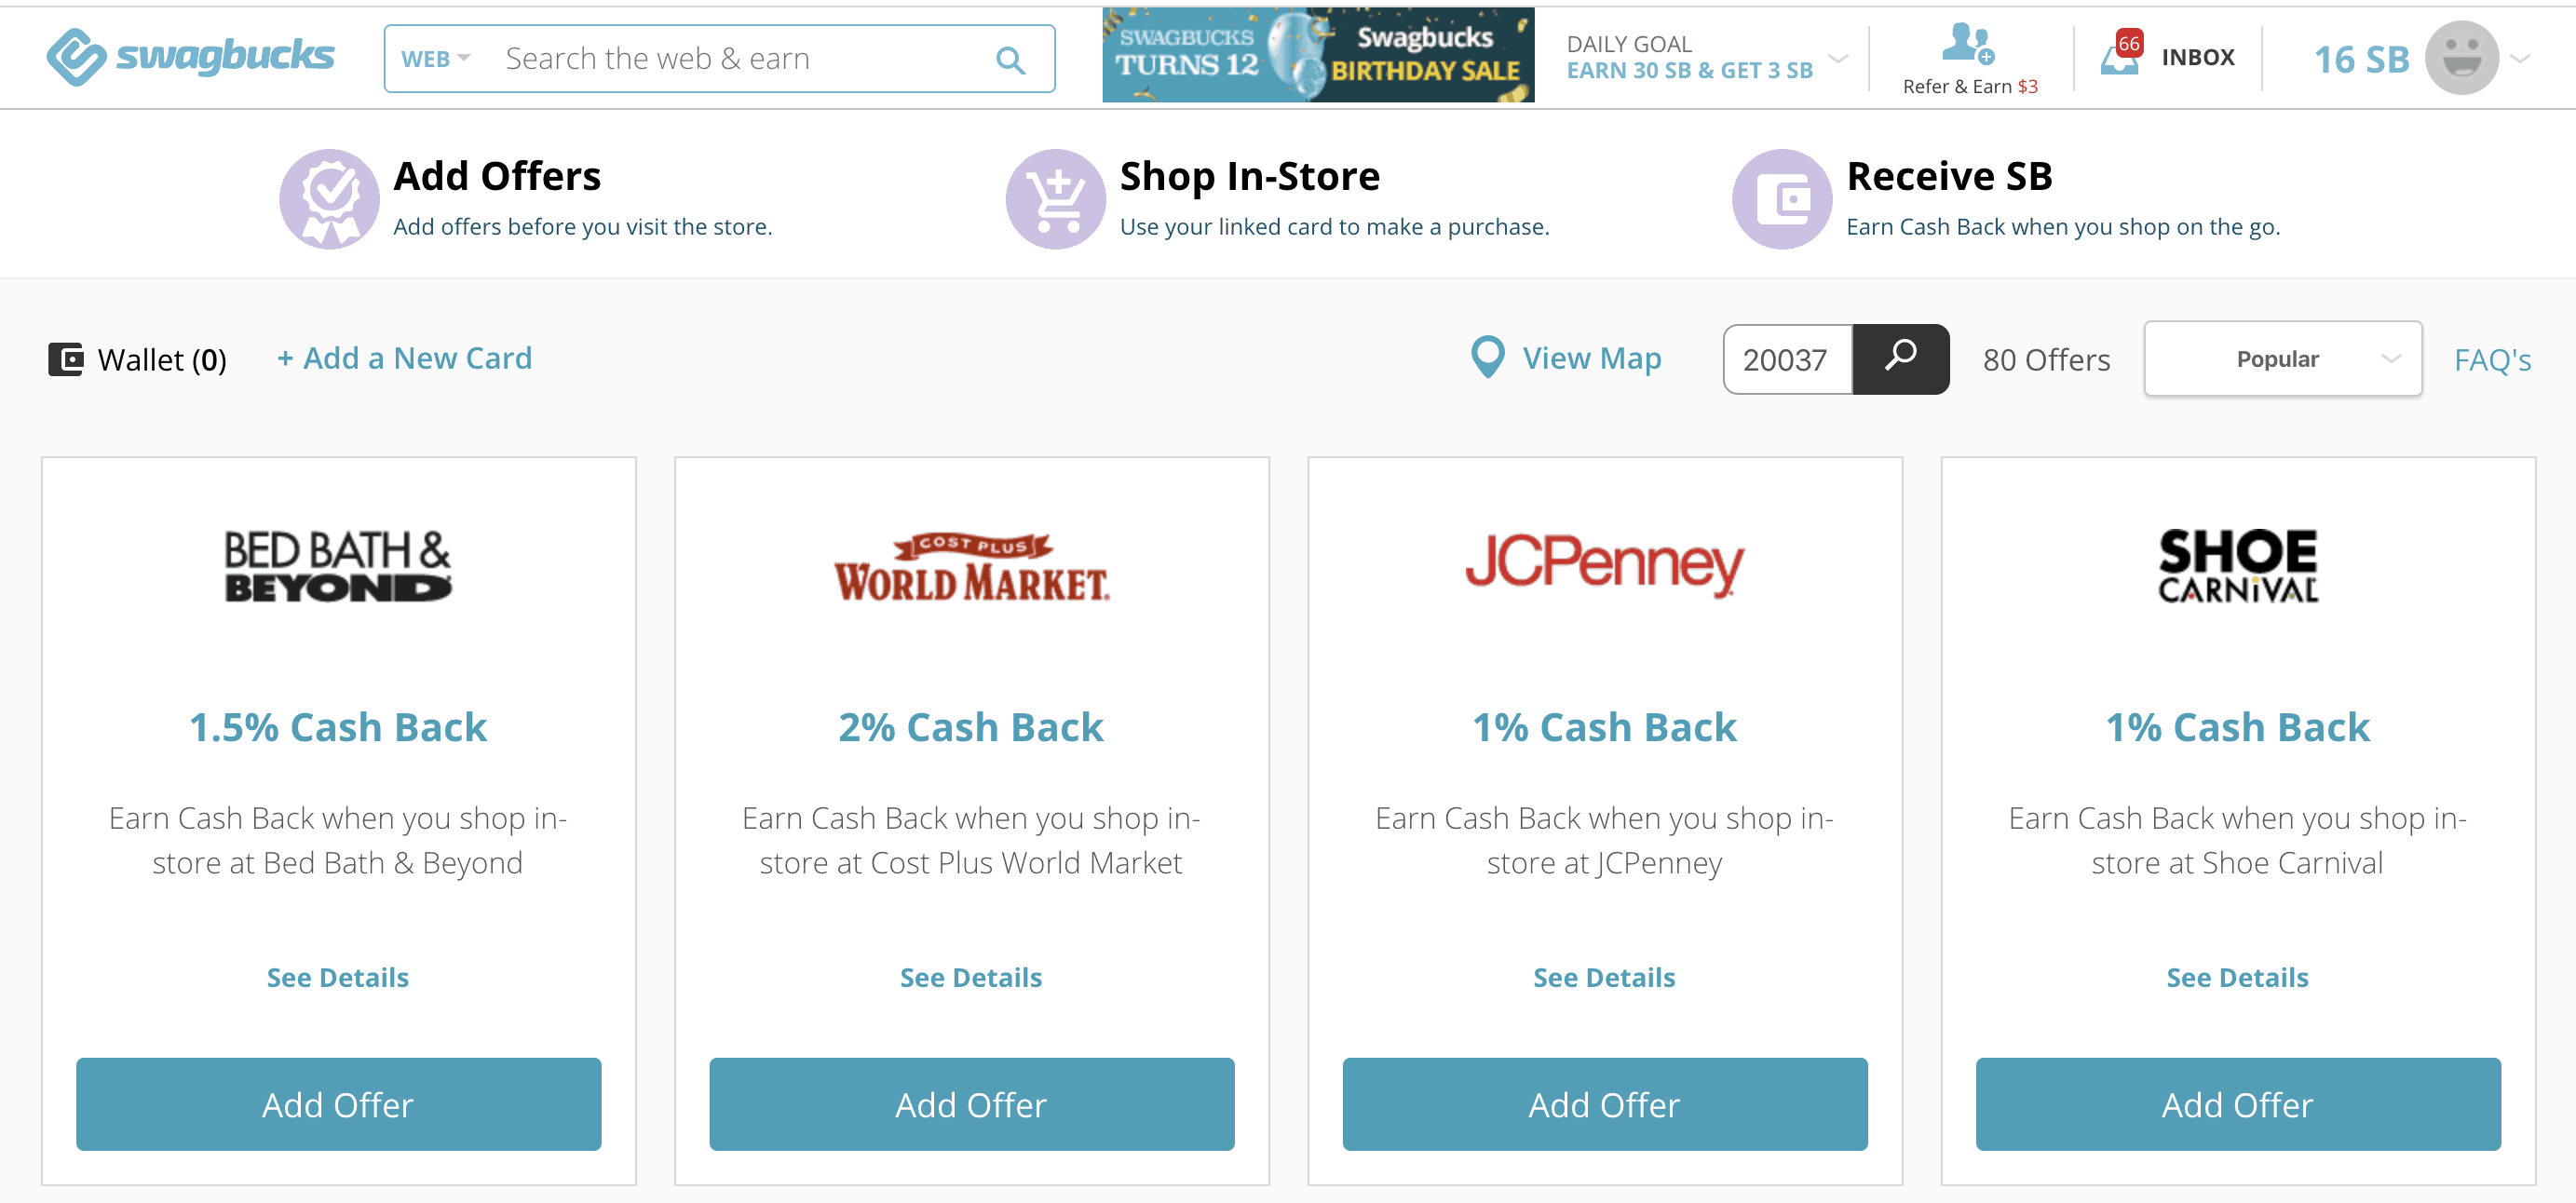 Swagbucks In-Store Offers